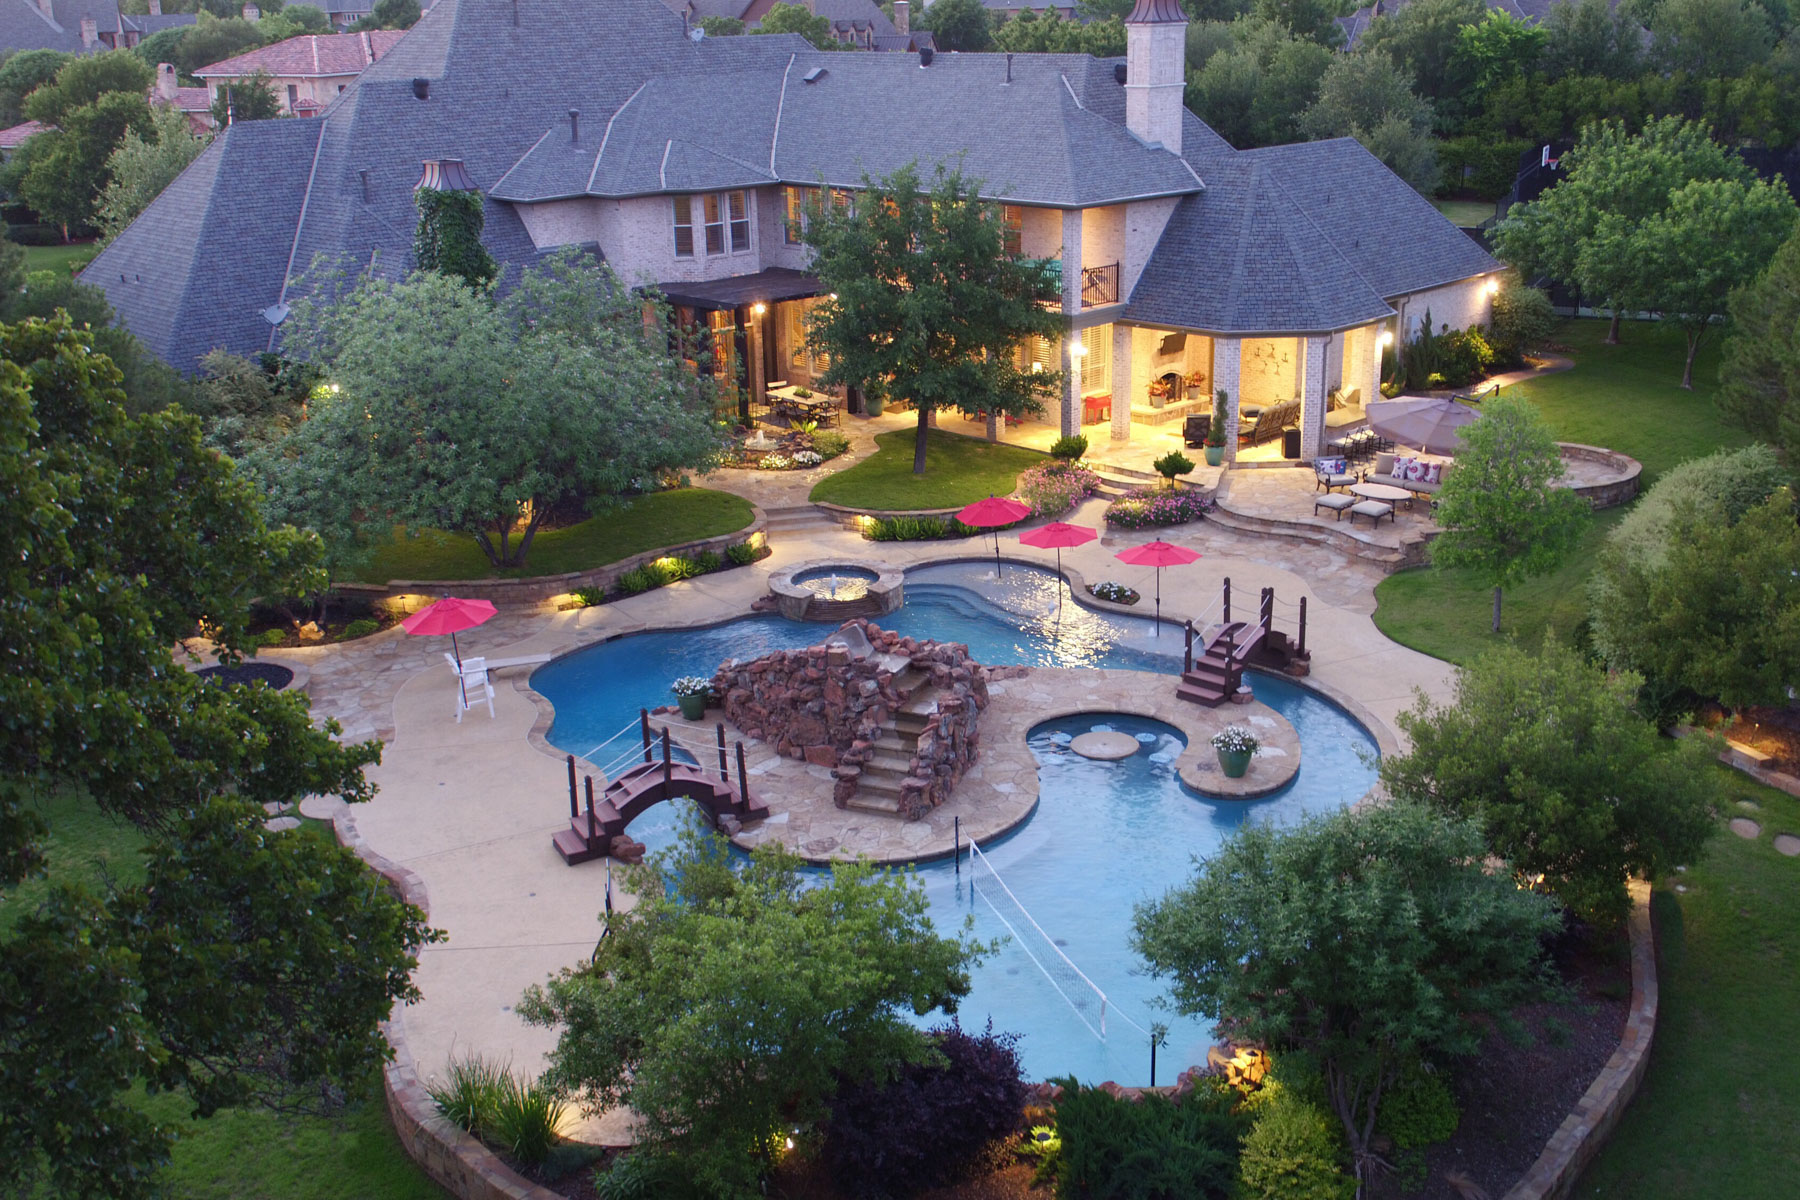 Villa per Vendita alle ore 2 ACRE ESTATE WITH RESORT-LIKE POOL 1833 Broken Bend Dr Westlake, Texas, 76262 Stati Uniti